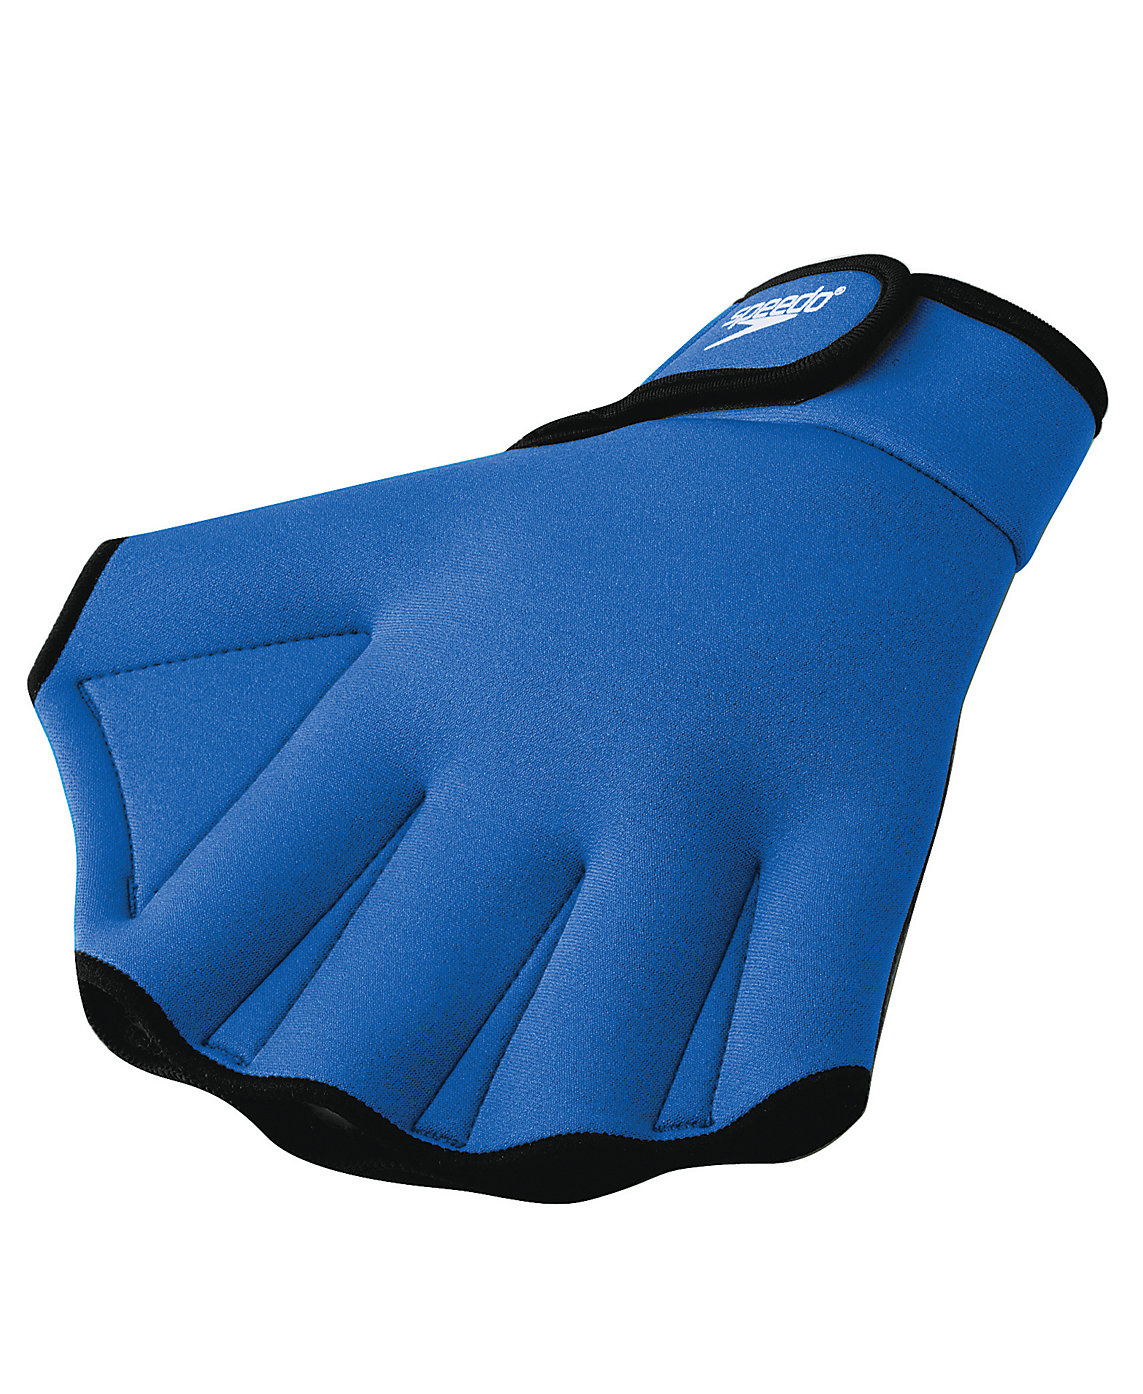 Speedo Aquatic Fitness Glove